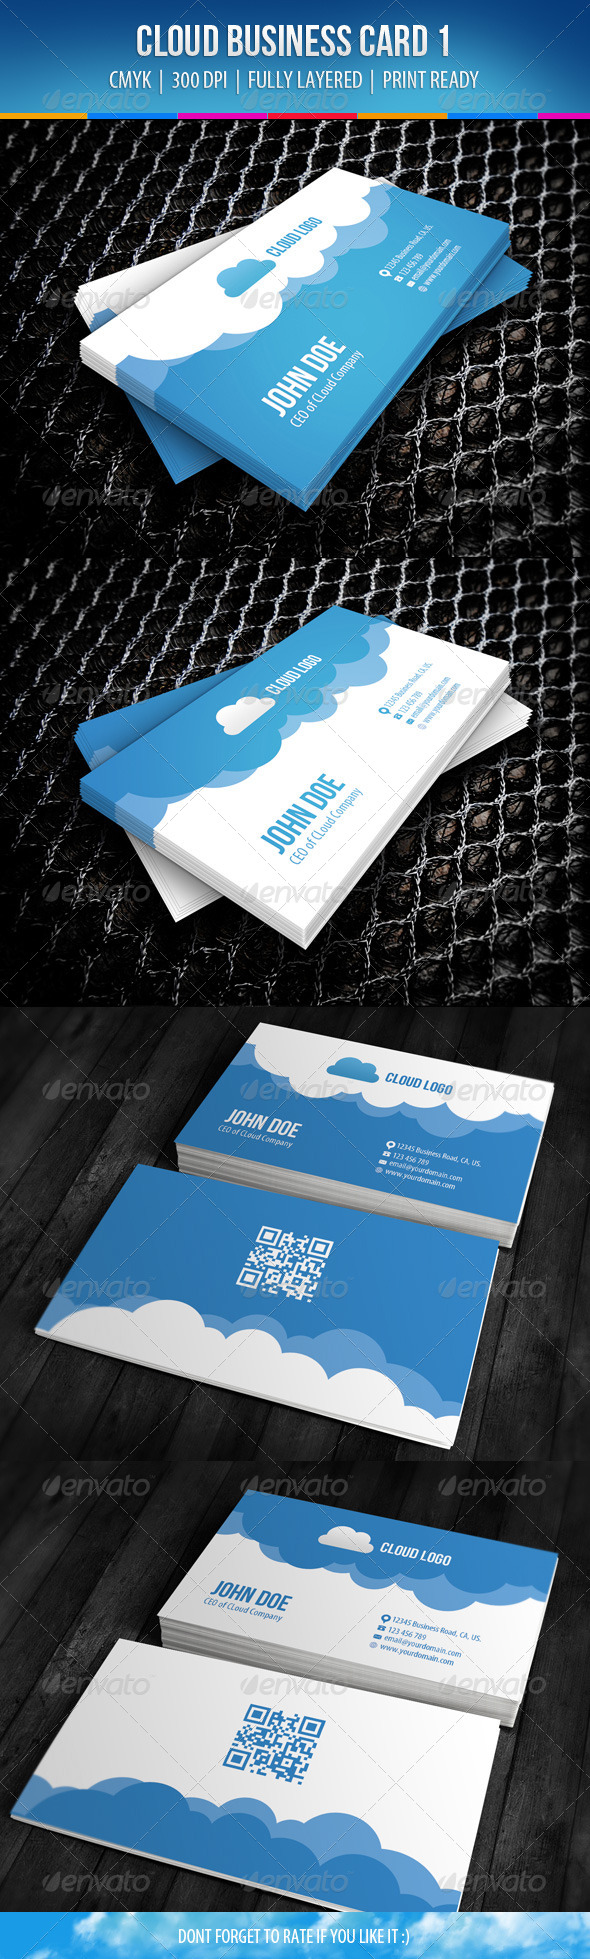 GraphicRiver Cloud Business Card Design 1 6319251